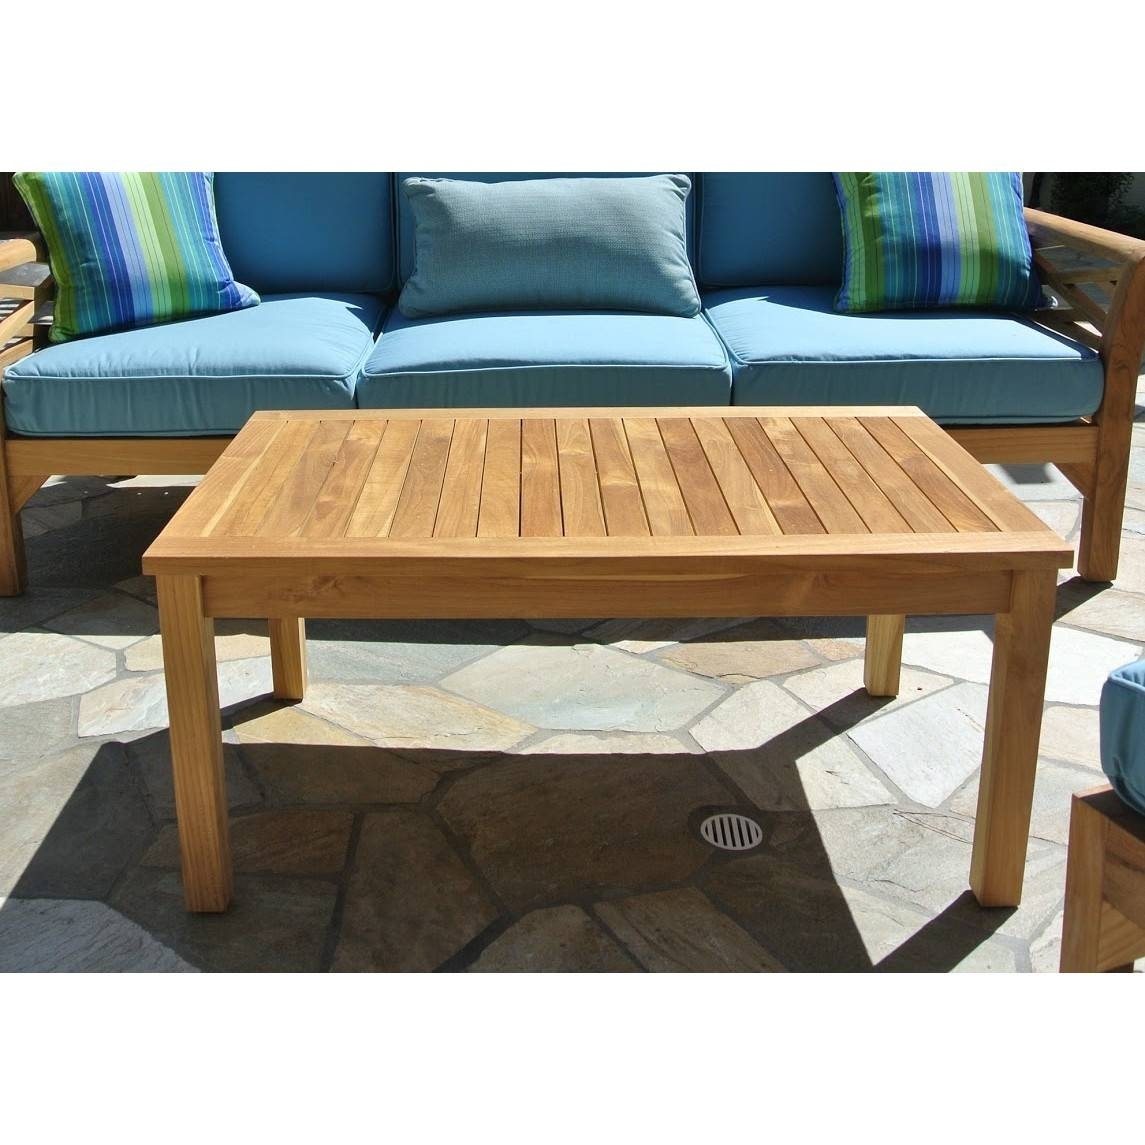 Willow Creek Designs Monterey Coffee Table | Wayfair with Monterey Coffee Tables (Image 30 of 30)